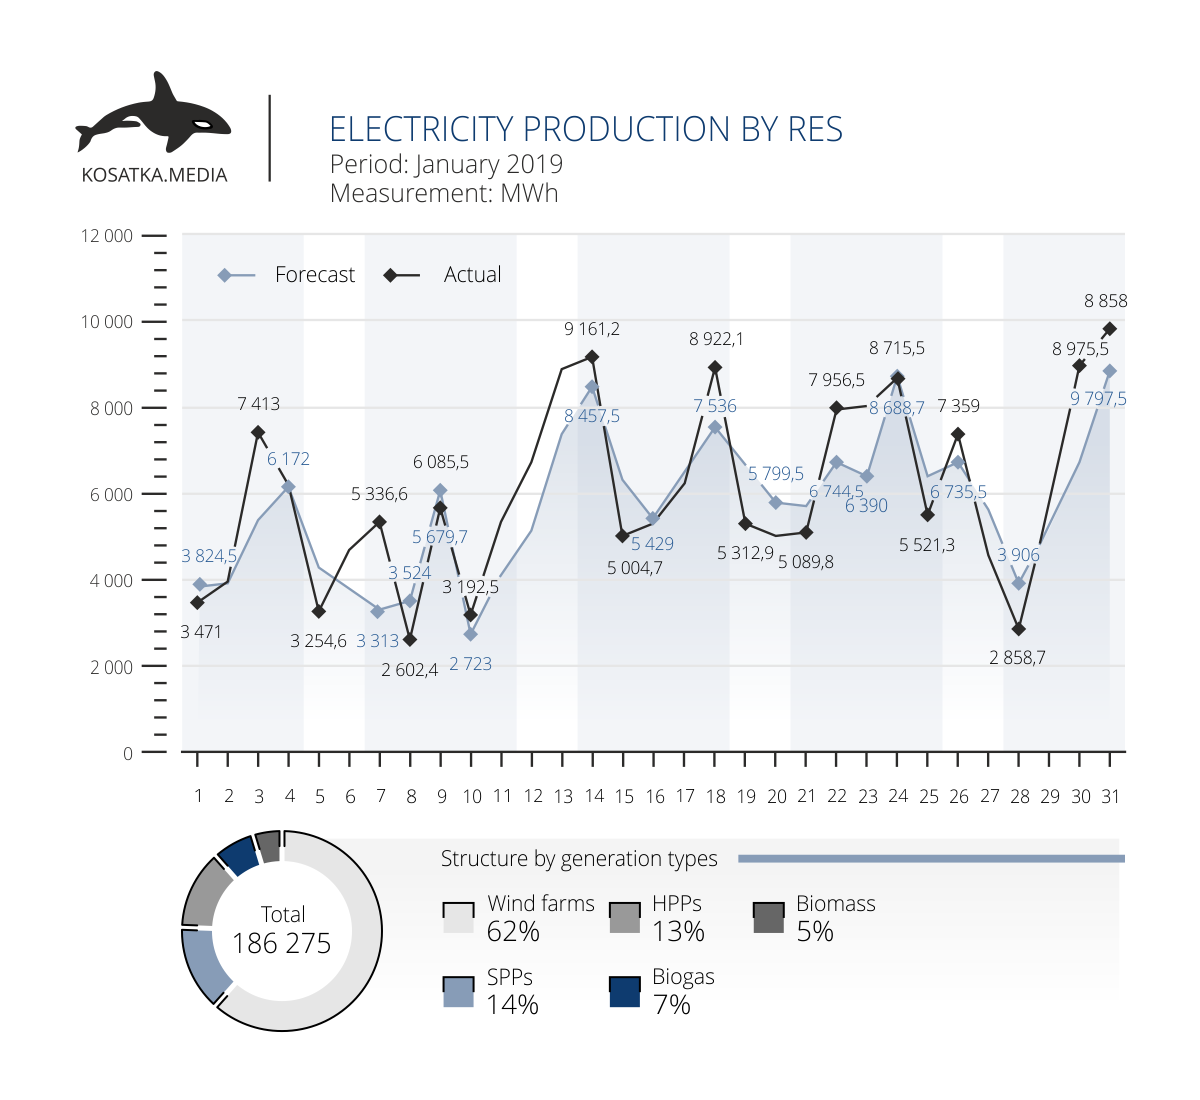 Production of electricity by renewables